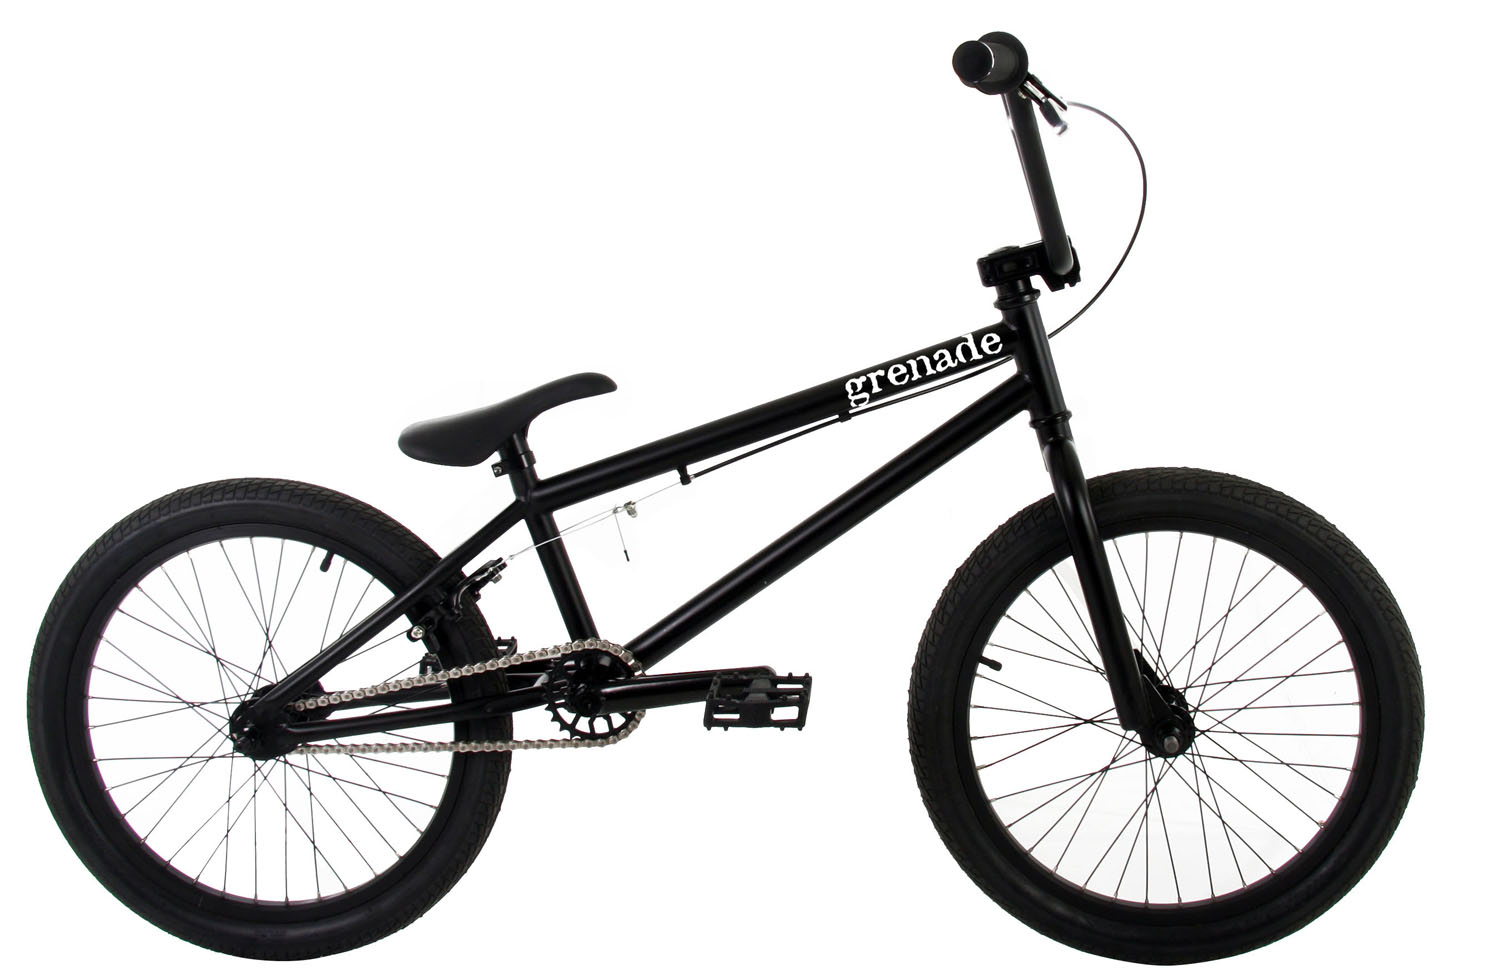 "BMX The 2013 Grenade M1 is the fourth in Grenade's lineup of ""entry level"" street/trail BMX bikes, but as you can see, the M1 is not your standard entry level bike with its Cromoly Main Triangle and 25/9 Micro Drive System and its features do not stop there. The M1 features Framed Grips, Framed Fuse Alloy Stem, Framed Pipe Bomb 175mm Tubular Cromoly Cranks with Cromoly Spindle, Framed 25 Tooth Alloy Sprocket, Framed Platform Pedals, Framed Cannon 14mm Alloy Hubset with a 9 Tooth Driver in the rear, and Framed Flak Jacket Double Wall Alloy Rims. The Grenade M1 Bike is as at home on the street as it is on the trails, with its agile but stable geometry and its quality packed components.These Grenade BMX bikes come without decals applied. Each bike is shipped with a decal packet, containing a number of decals of different styles and colors. This allows the rider to customize the bike to their liking. Key Features of the Grenade M1 BMX Bike 20"": FRAME: CroMo Main Triangle w/20.4"" Top Tube FORKS: HiTen Forks w/CroMo Steer Tube BARS: HiTen 8"" Rise Bars GRIPS: Framed Grips STEM: Framed Fuse Alloy Stem HEADSET: 1 1/8"" Threadless Headset BRAKE LEVER: Framed Alloy Lever BRAKE: Framed Alloy U-Brakes CRANKS: Framed Pipe Bomb 175mm Tubular CroMo Cranks w/CroMo Spindle SPROCKET: Framed 25 Tooth Alloy Sprocket CHAIN: KMC Z410 PEDALS: Framed Platform Pedals FRONT HUB: Framed Cannon 14mm 36 Hole Alloy Hub REAR HUB: Framed Cannon 14mm 36 Hole Alloy Hub w/9 Tooth Driver RIMS: Framed Flak Jacket Double Wall Alloy Rims TIRES: Framed 20"" X 2.125"" Tires SADDLE: Framed Saddle SEAT POST: Framed Seat Post CLAMP: Framed Alloy Clamp PEGS: Framed Steel Pegs (2 PCS) TOP TUBE: 20.4"" HEAD TUBE ANGLE: 74degrees SEAT TUBE: 9.5"" SEAT TUBE ANGLE: 71degrees CHAINSTAY: 14"" BB HEIGHT: 11.6"" APPROX WEIGHT: 26 lbs WHEELBASE: 36.25"" - $239.95"